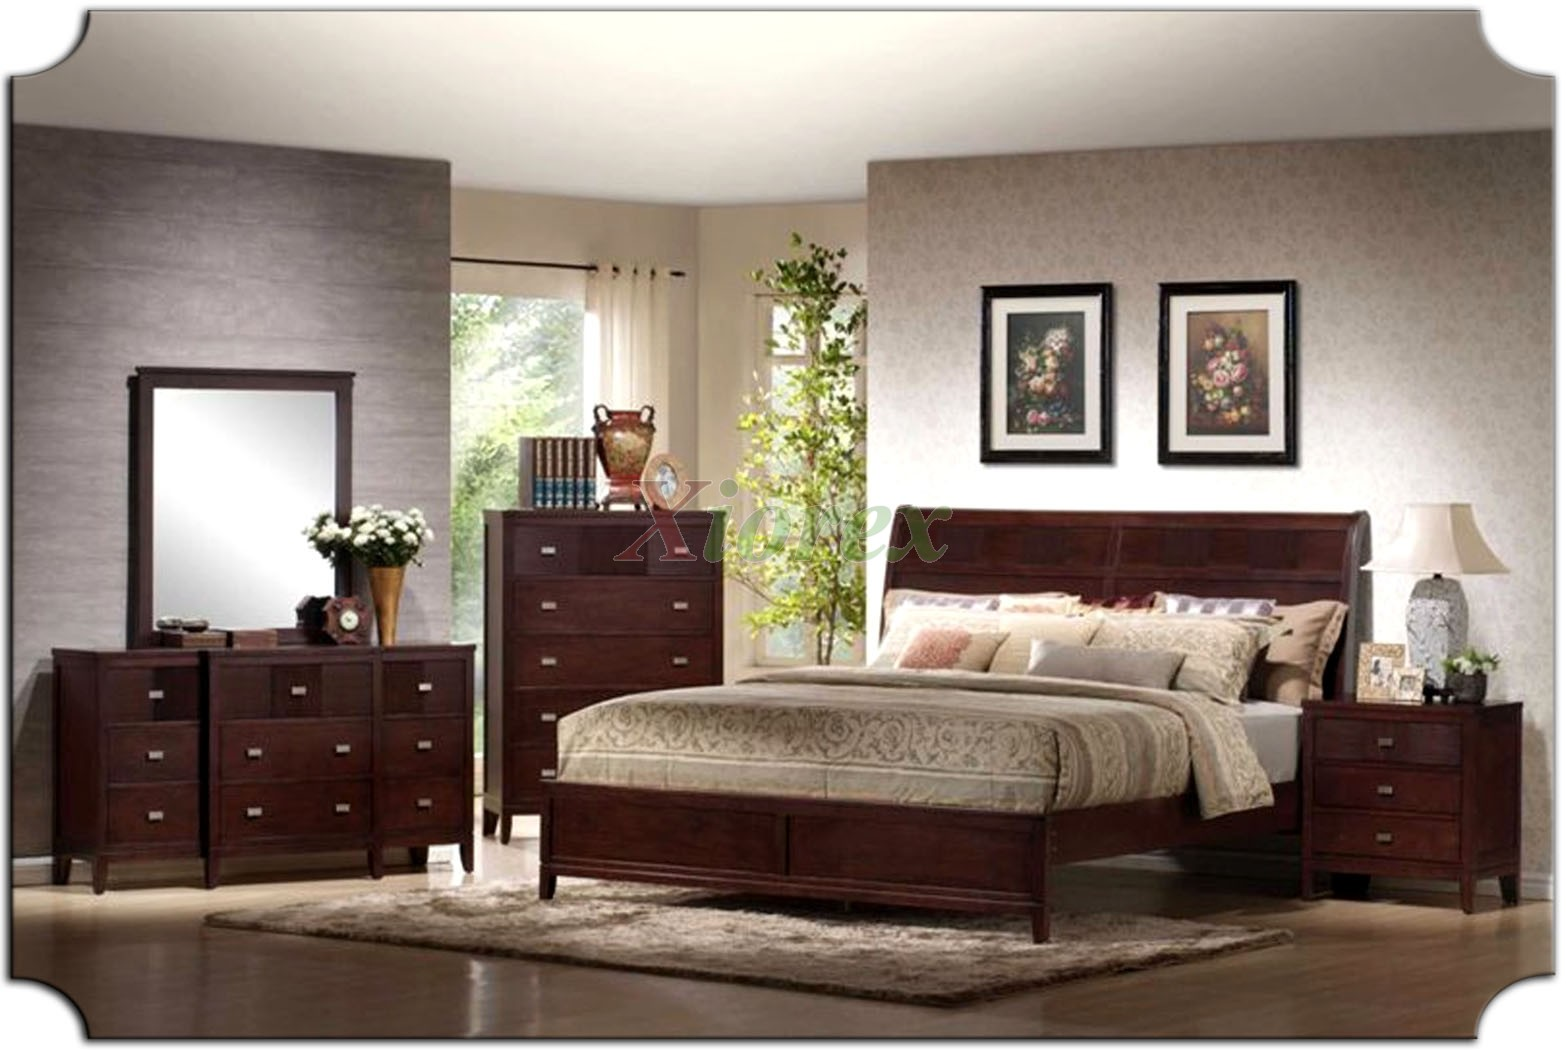 Platform Bedroom Furniture Set with Curved Headboard Beds 5  Xiorex